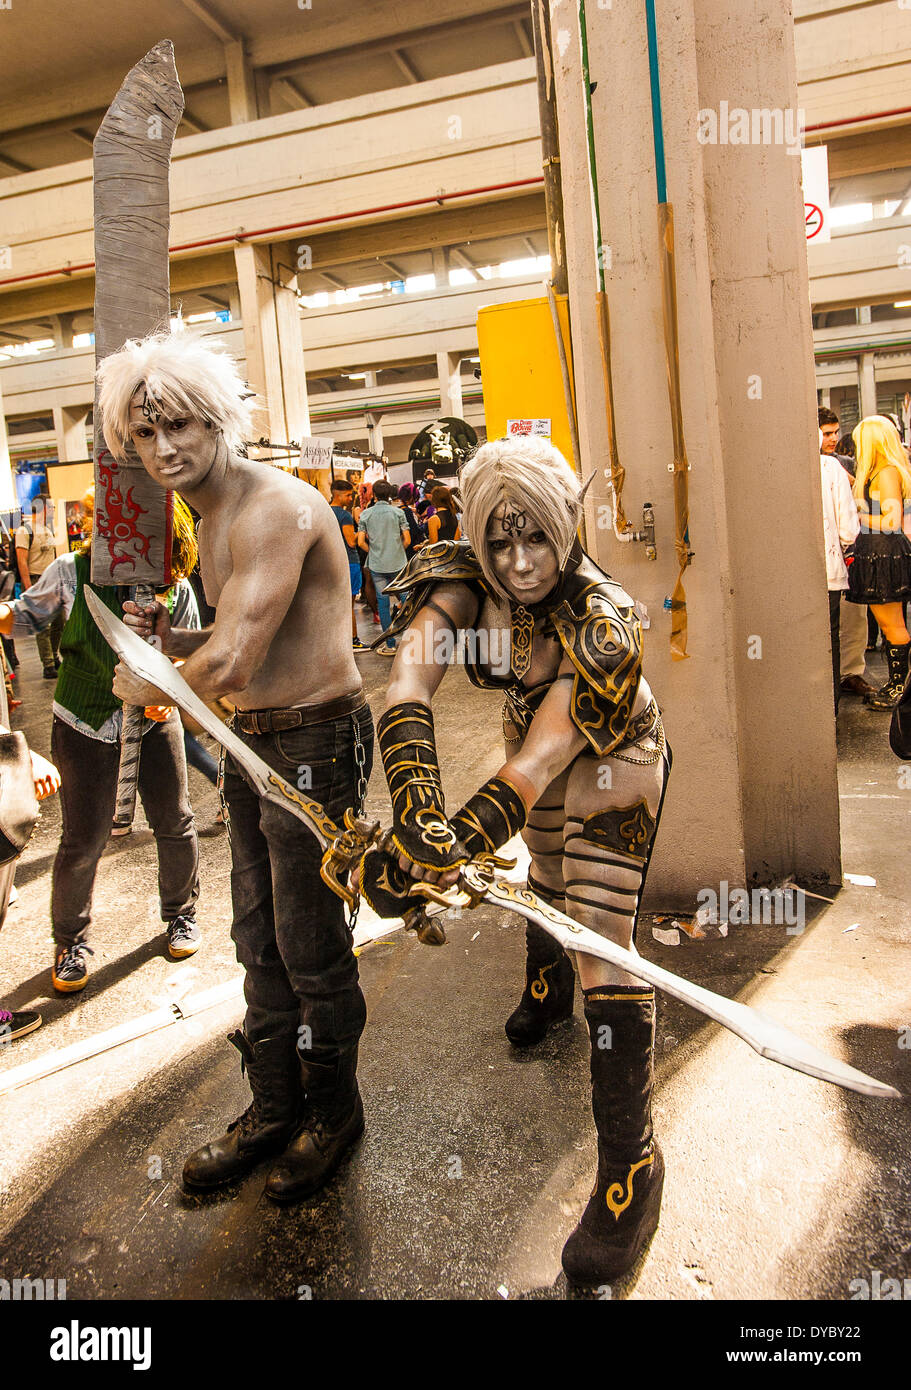 Turin, Piedmont, Italy. 13th April, 2014. Lingotto Fiere 13 April 2014 Torino Comics exhibition  Cosplay © Realy Easy Star/Alamy - Stock Image